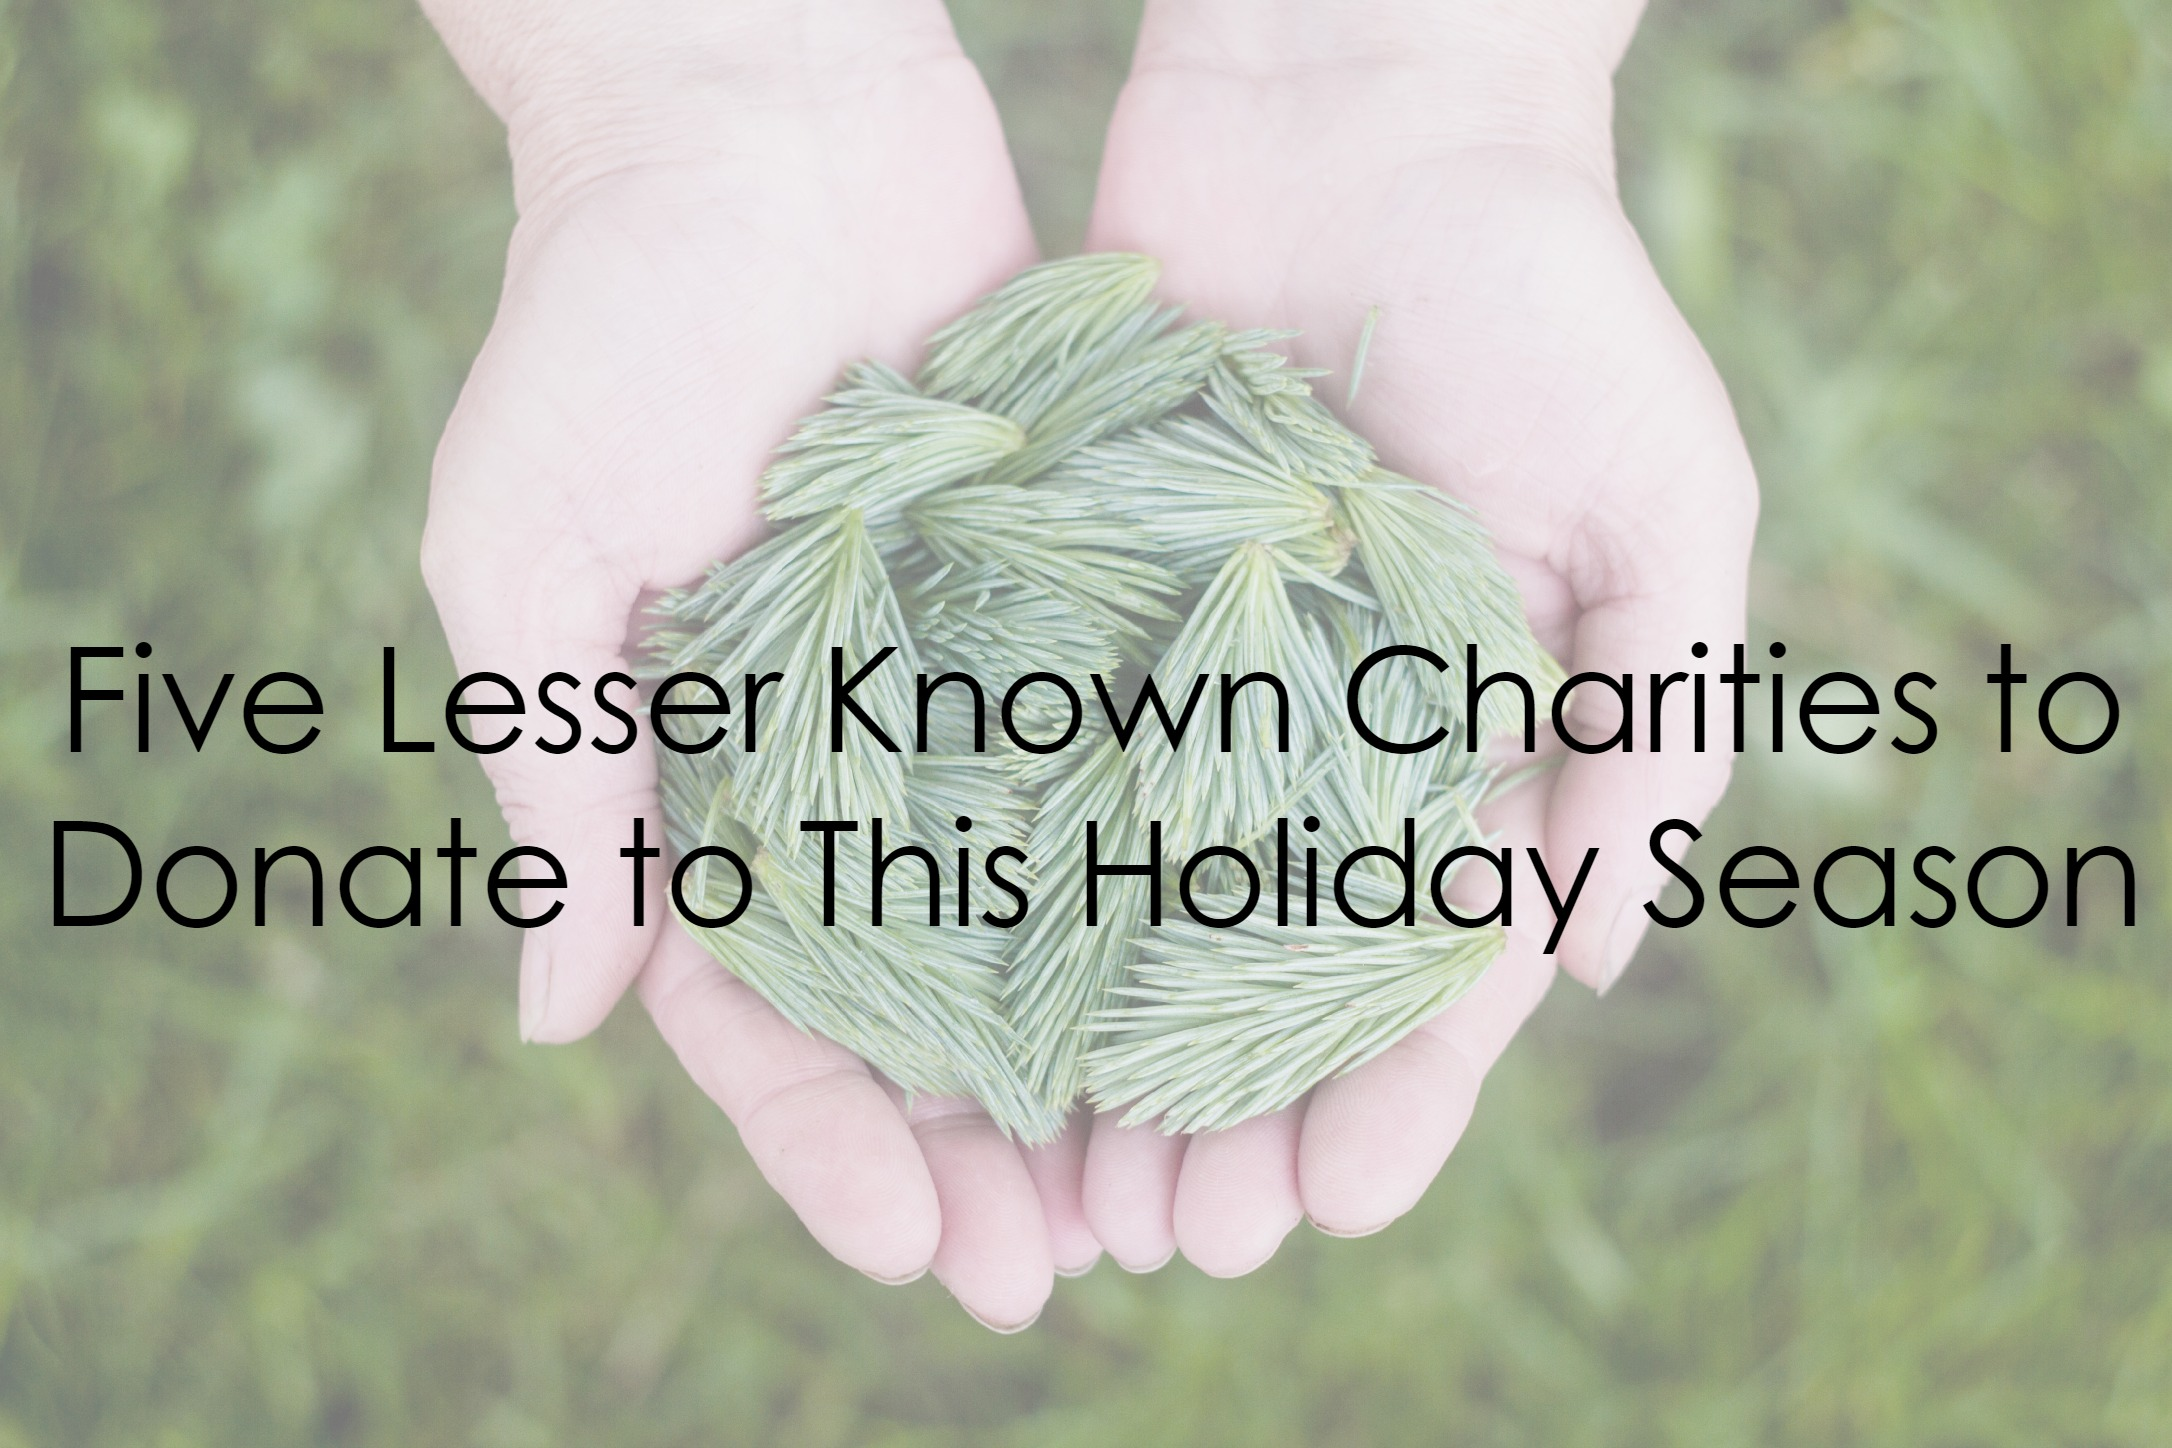 Celebrate the Season: Five lesser known charities to donate to this holiday season